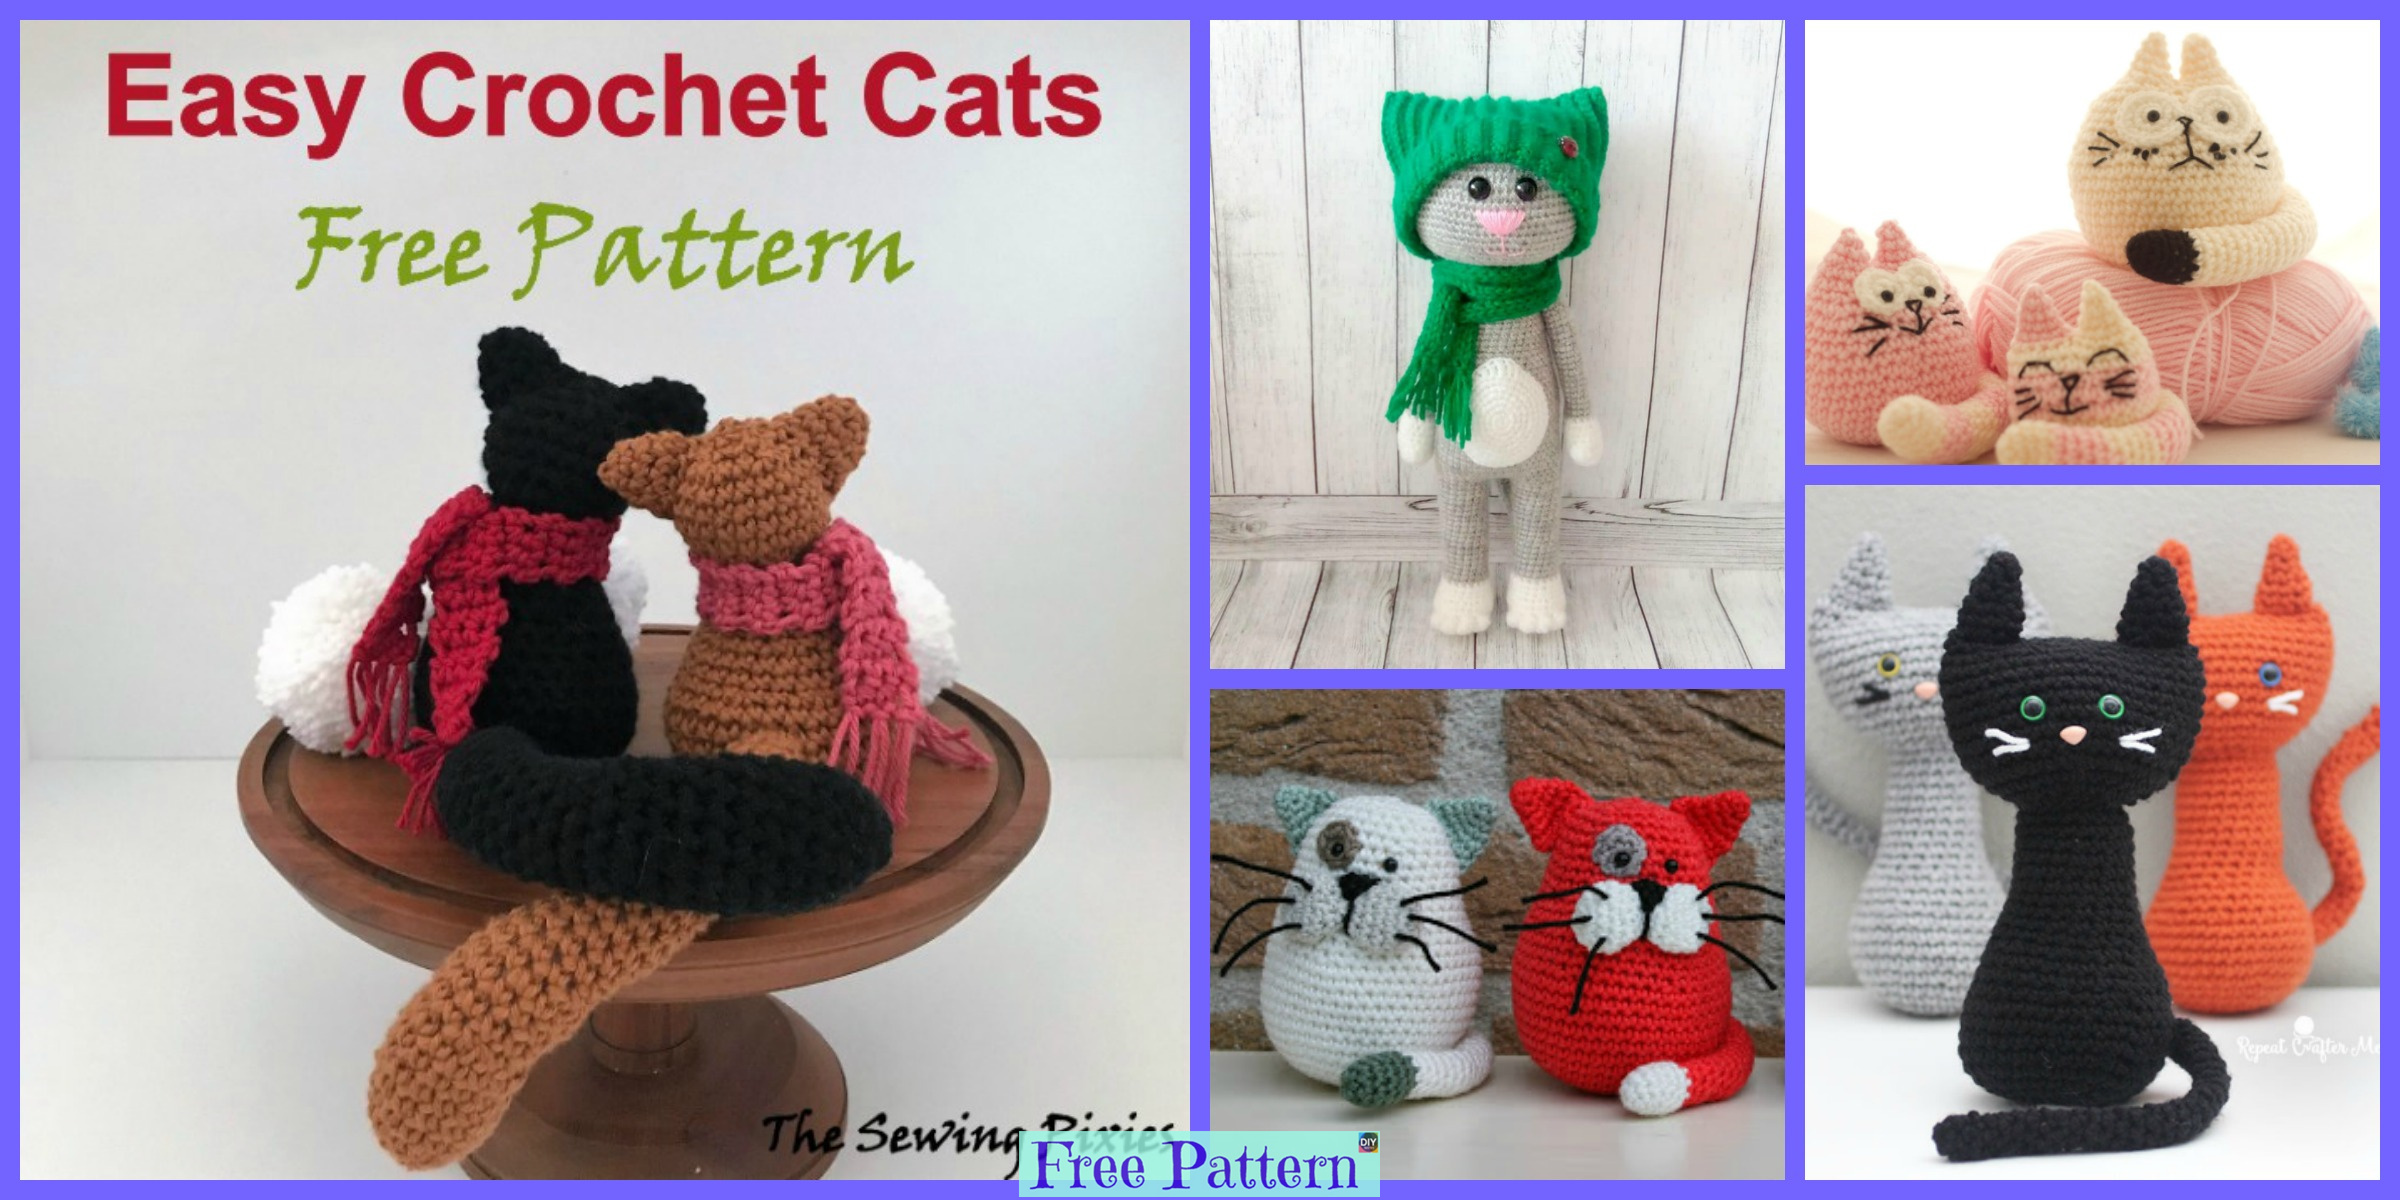 10 Crochet Cats Home Decor Free Patterns